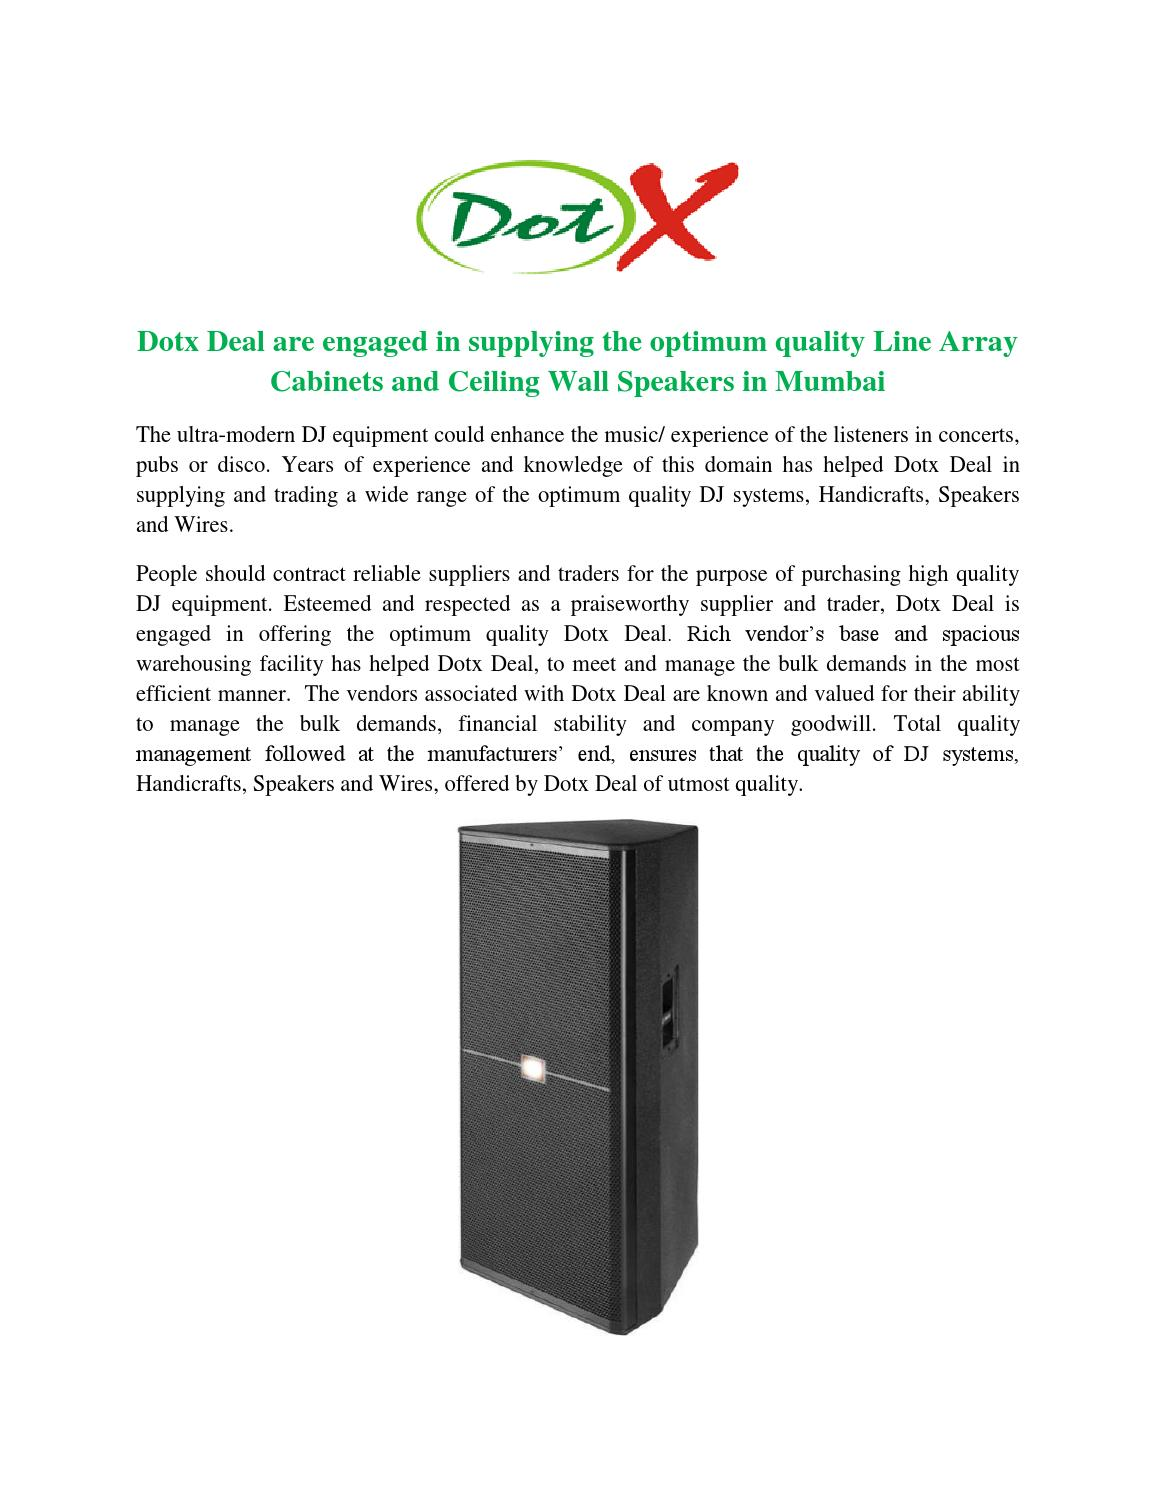 Dotx Deal Are Engaged In Supplying The Optimum Quality Line Array Speaker Wiring Cabinets And Ceiling Wall Speakers By Issuu